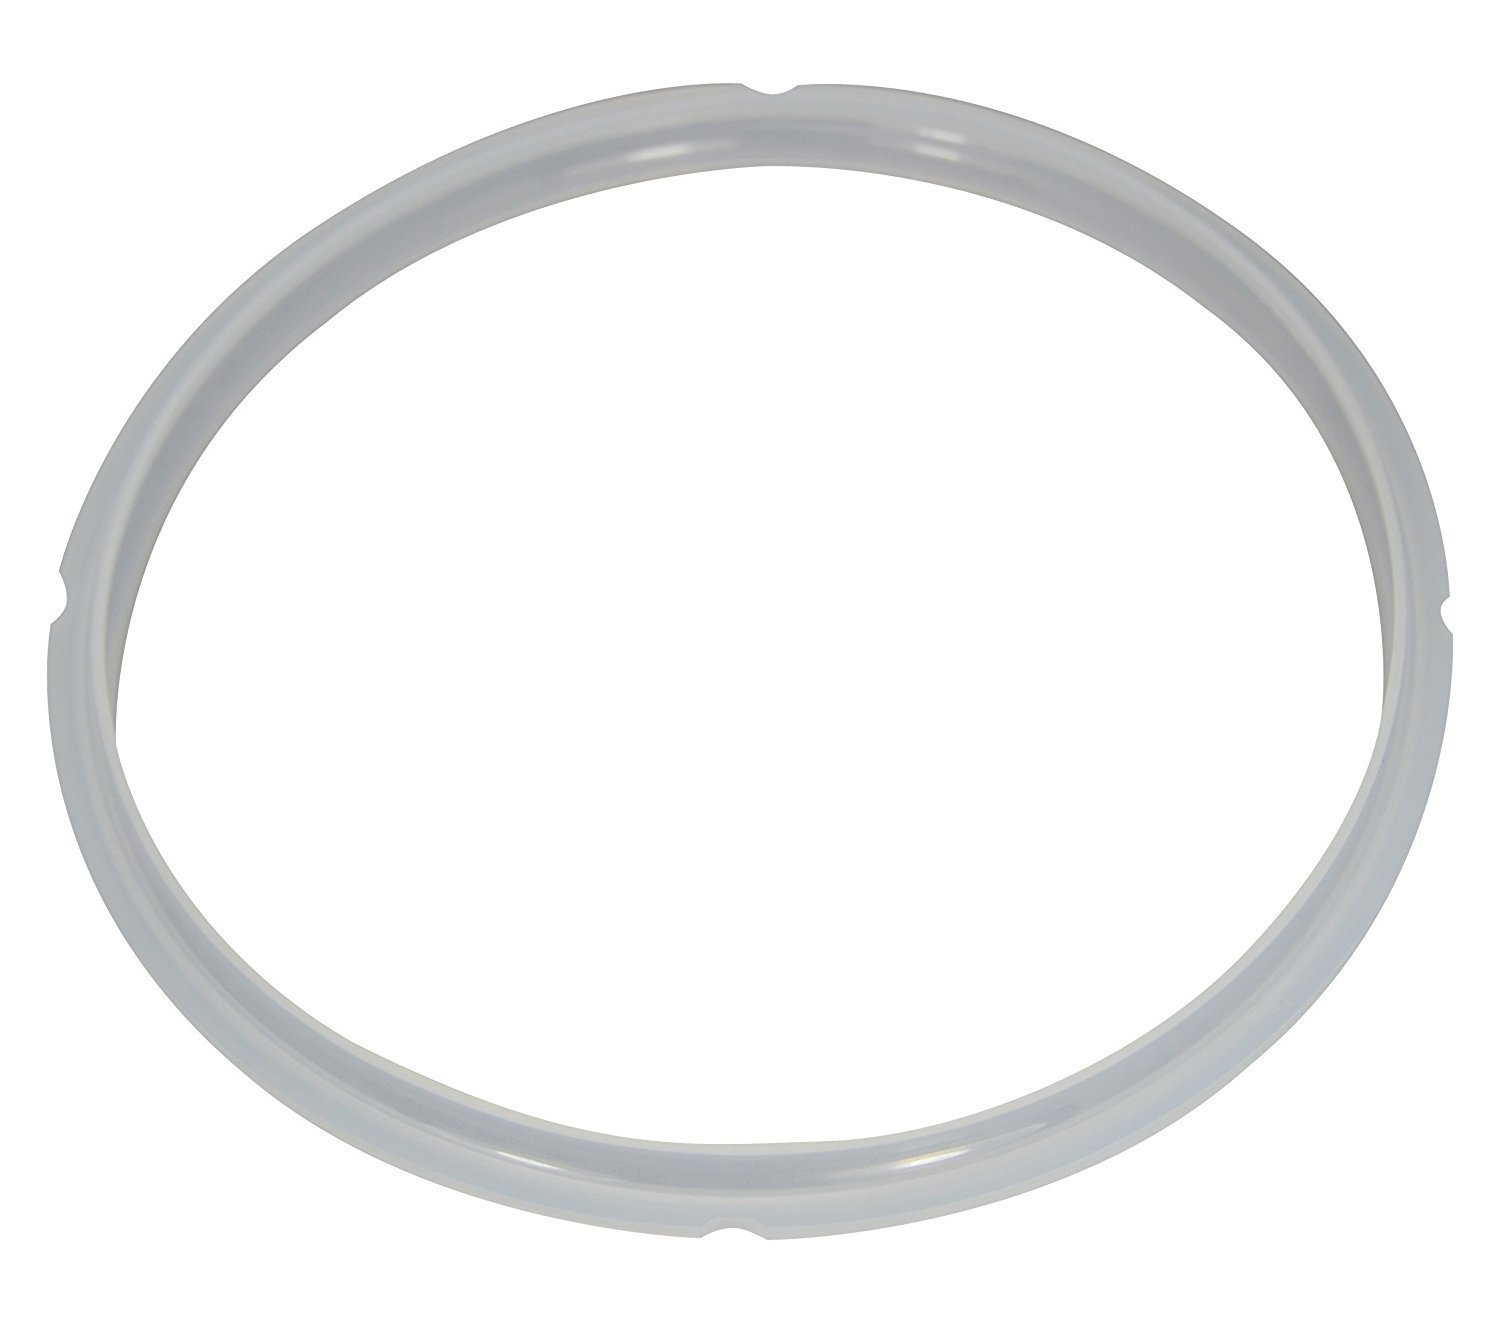 Rubber Gasket For Power Pressure Cookers (All 5 & 6 Quart Models)